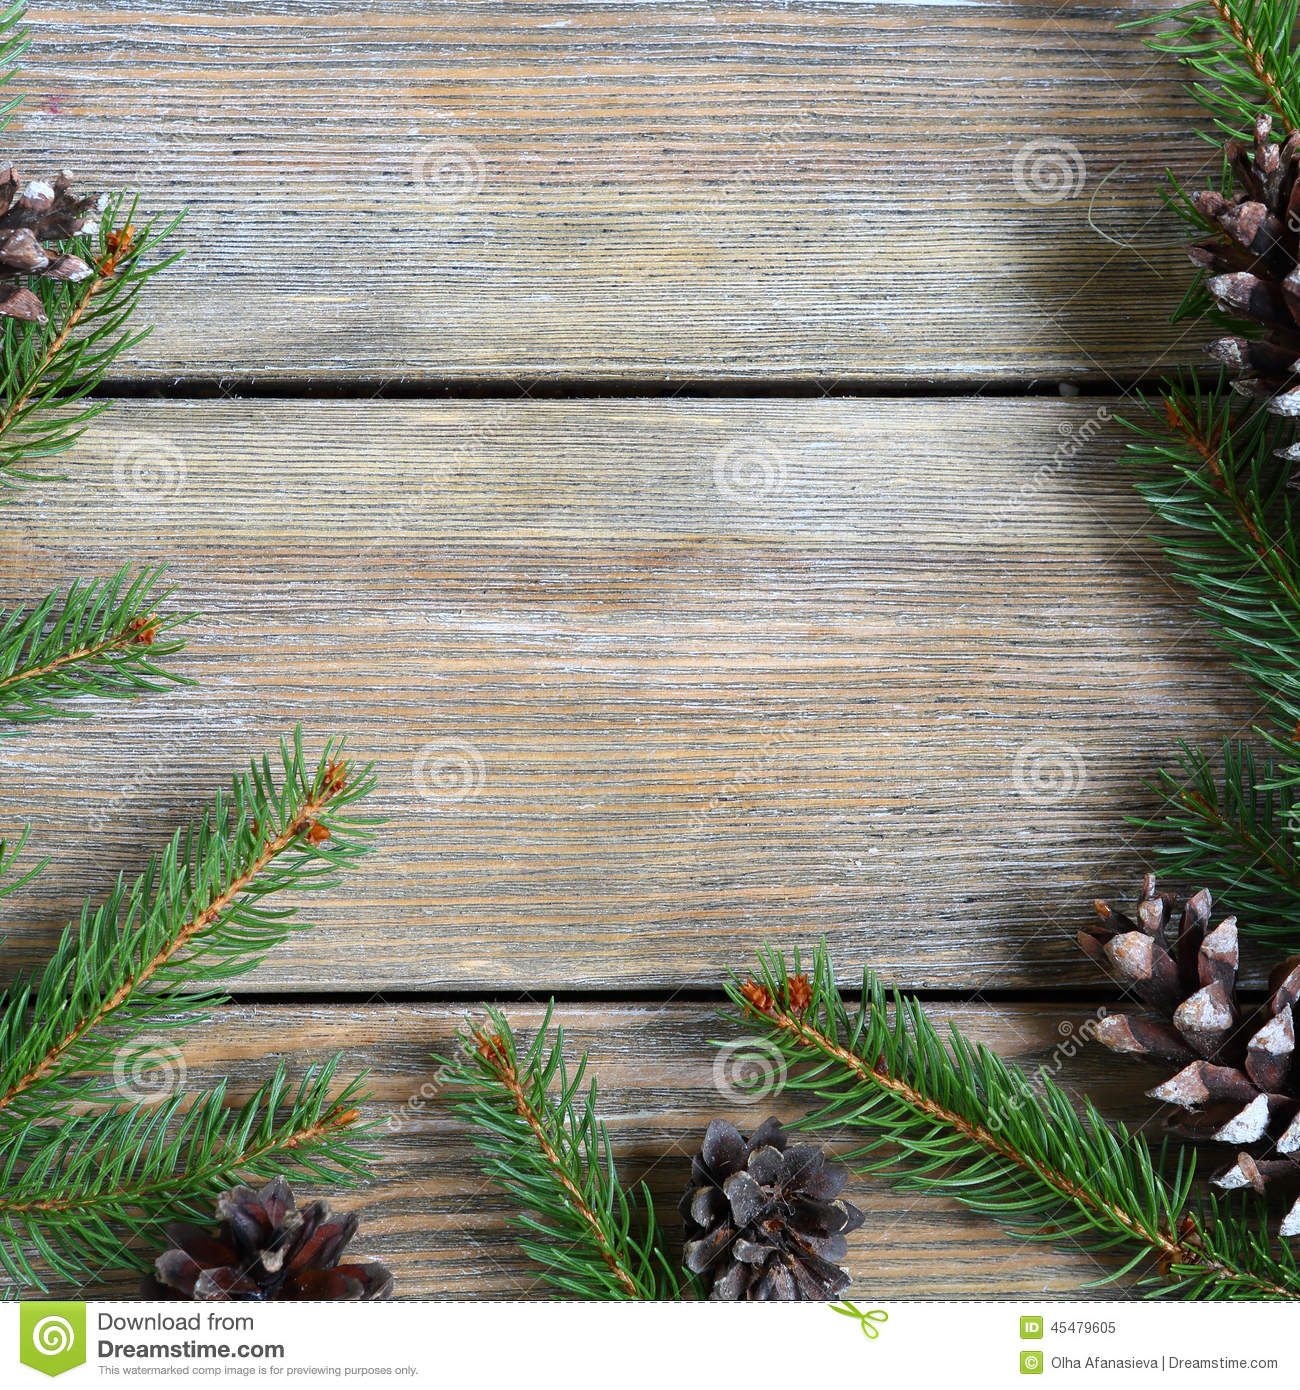 Xmas Frame With Pine Branch And Cones On Wooden Boards